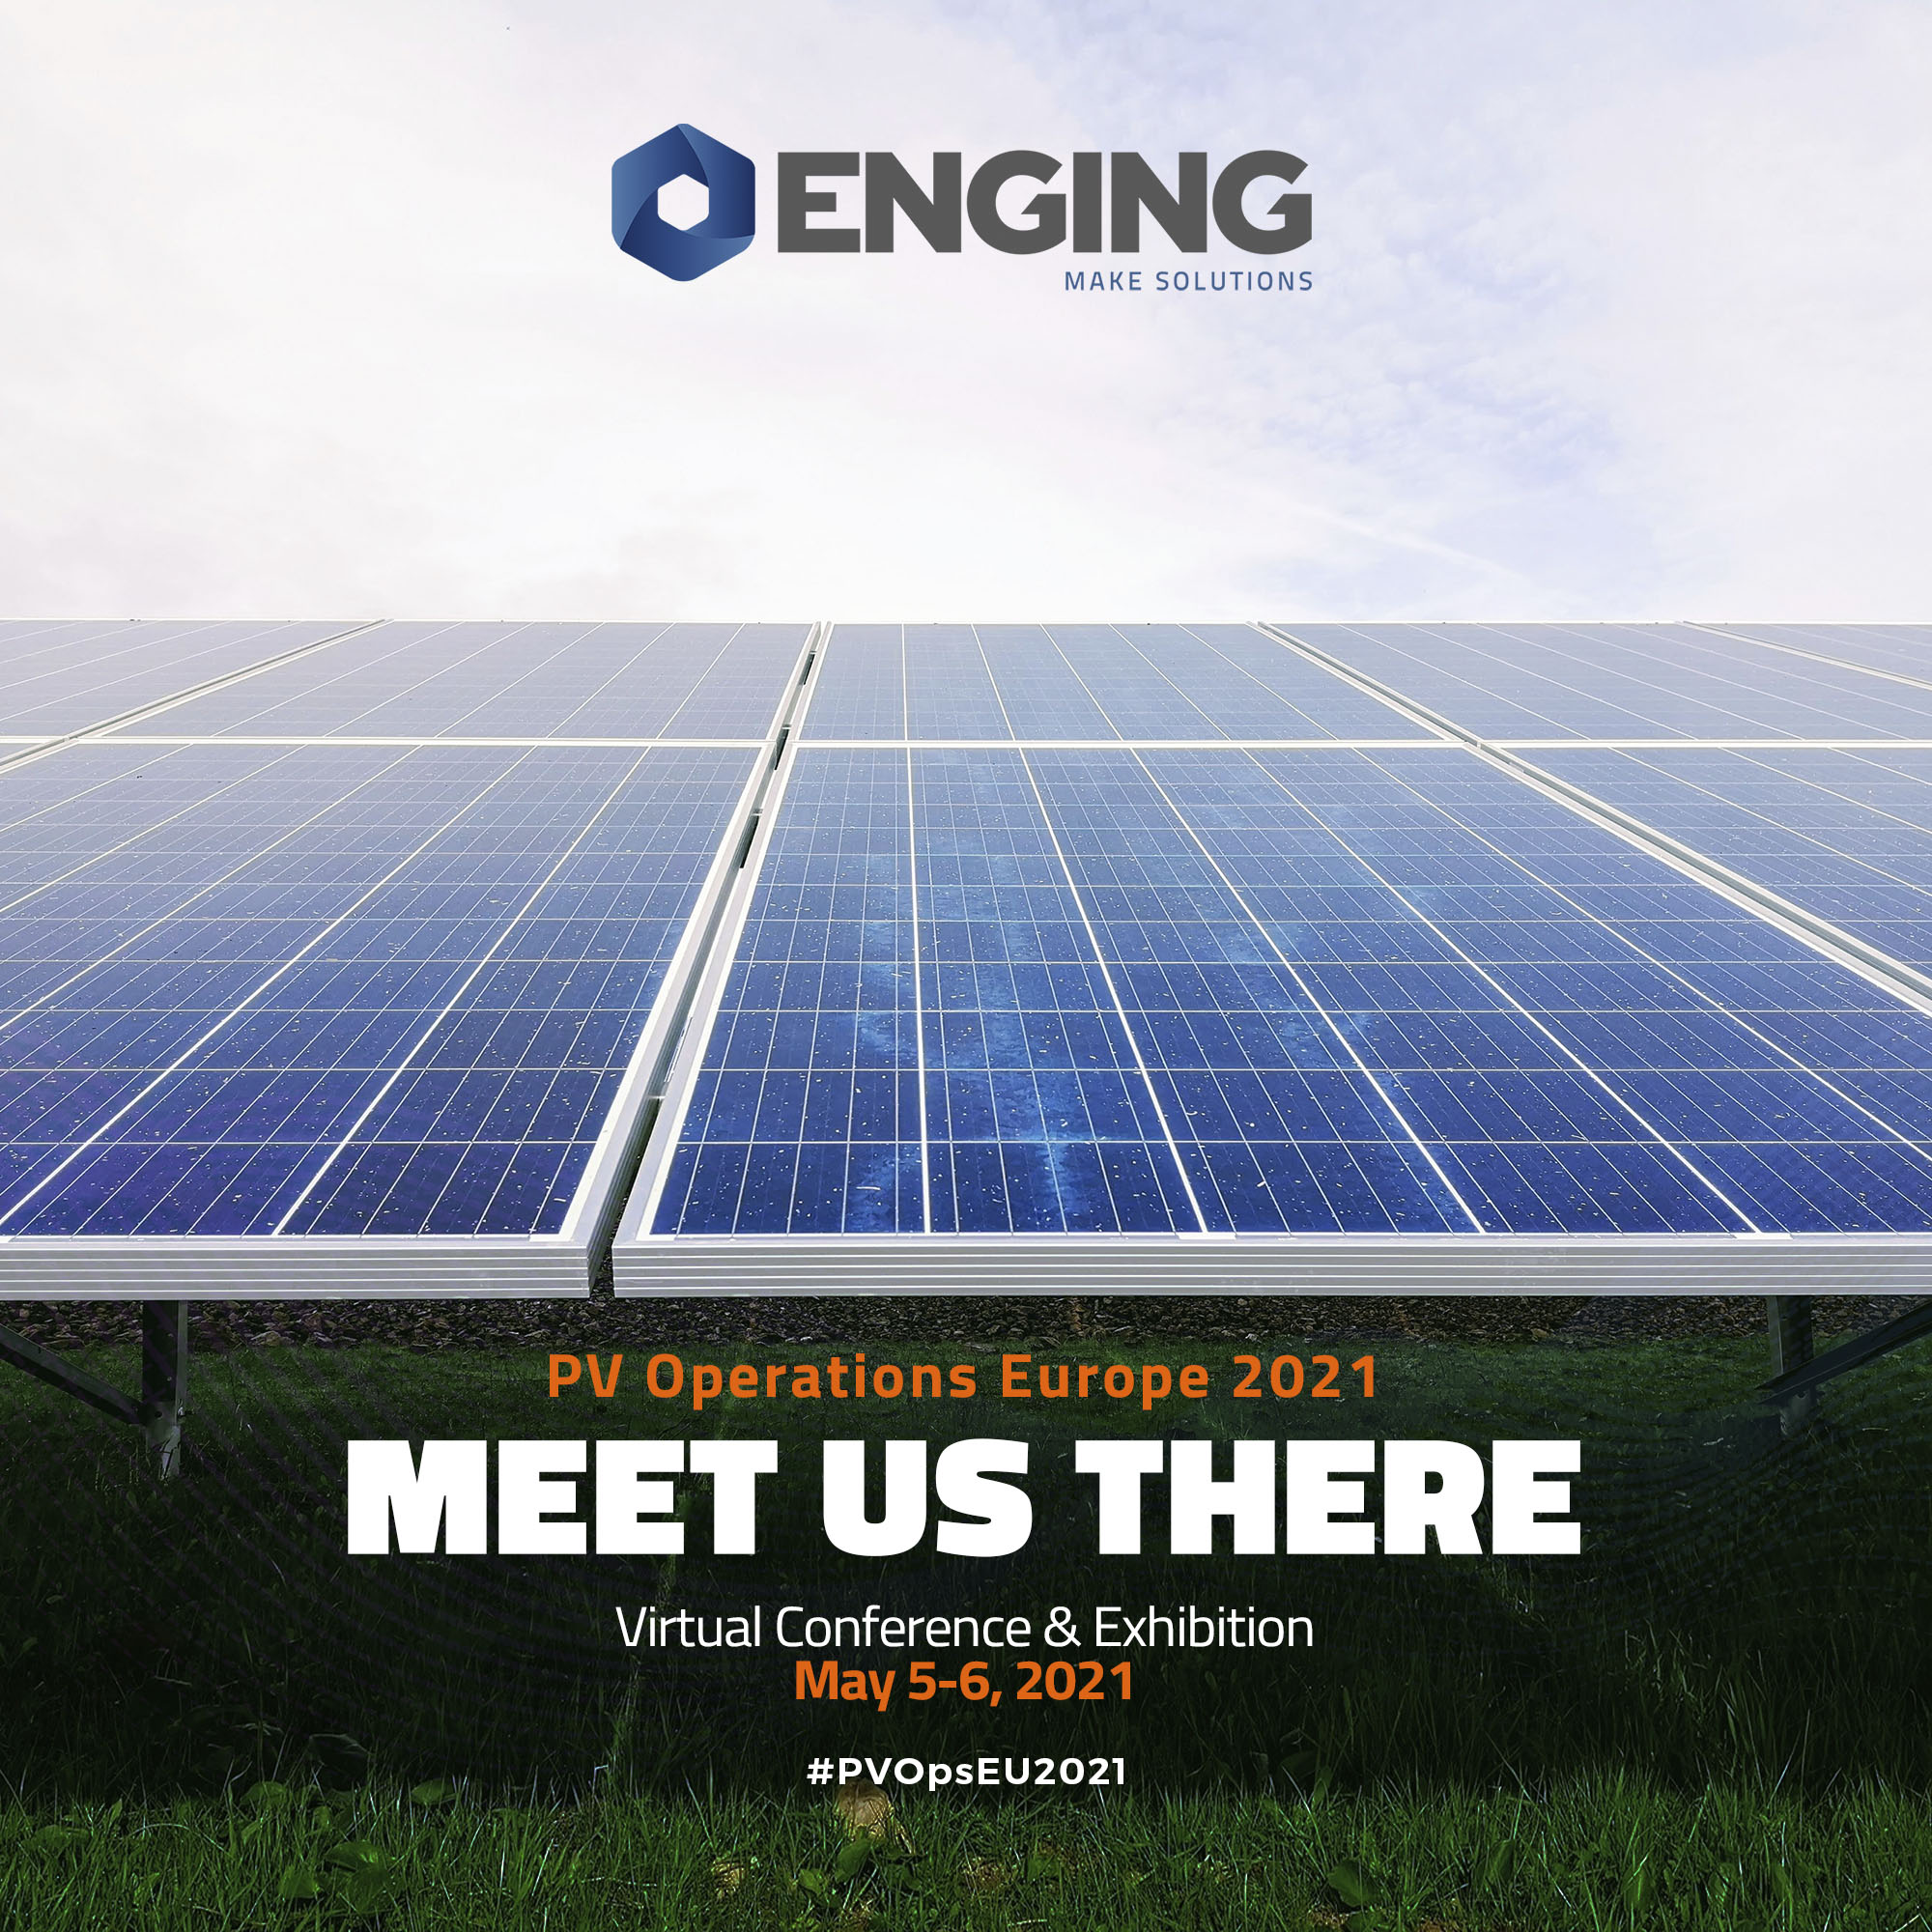 PV Operations Europe 2021